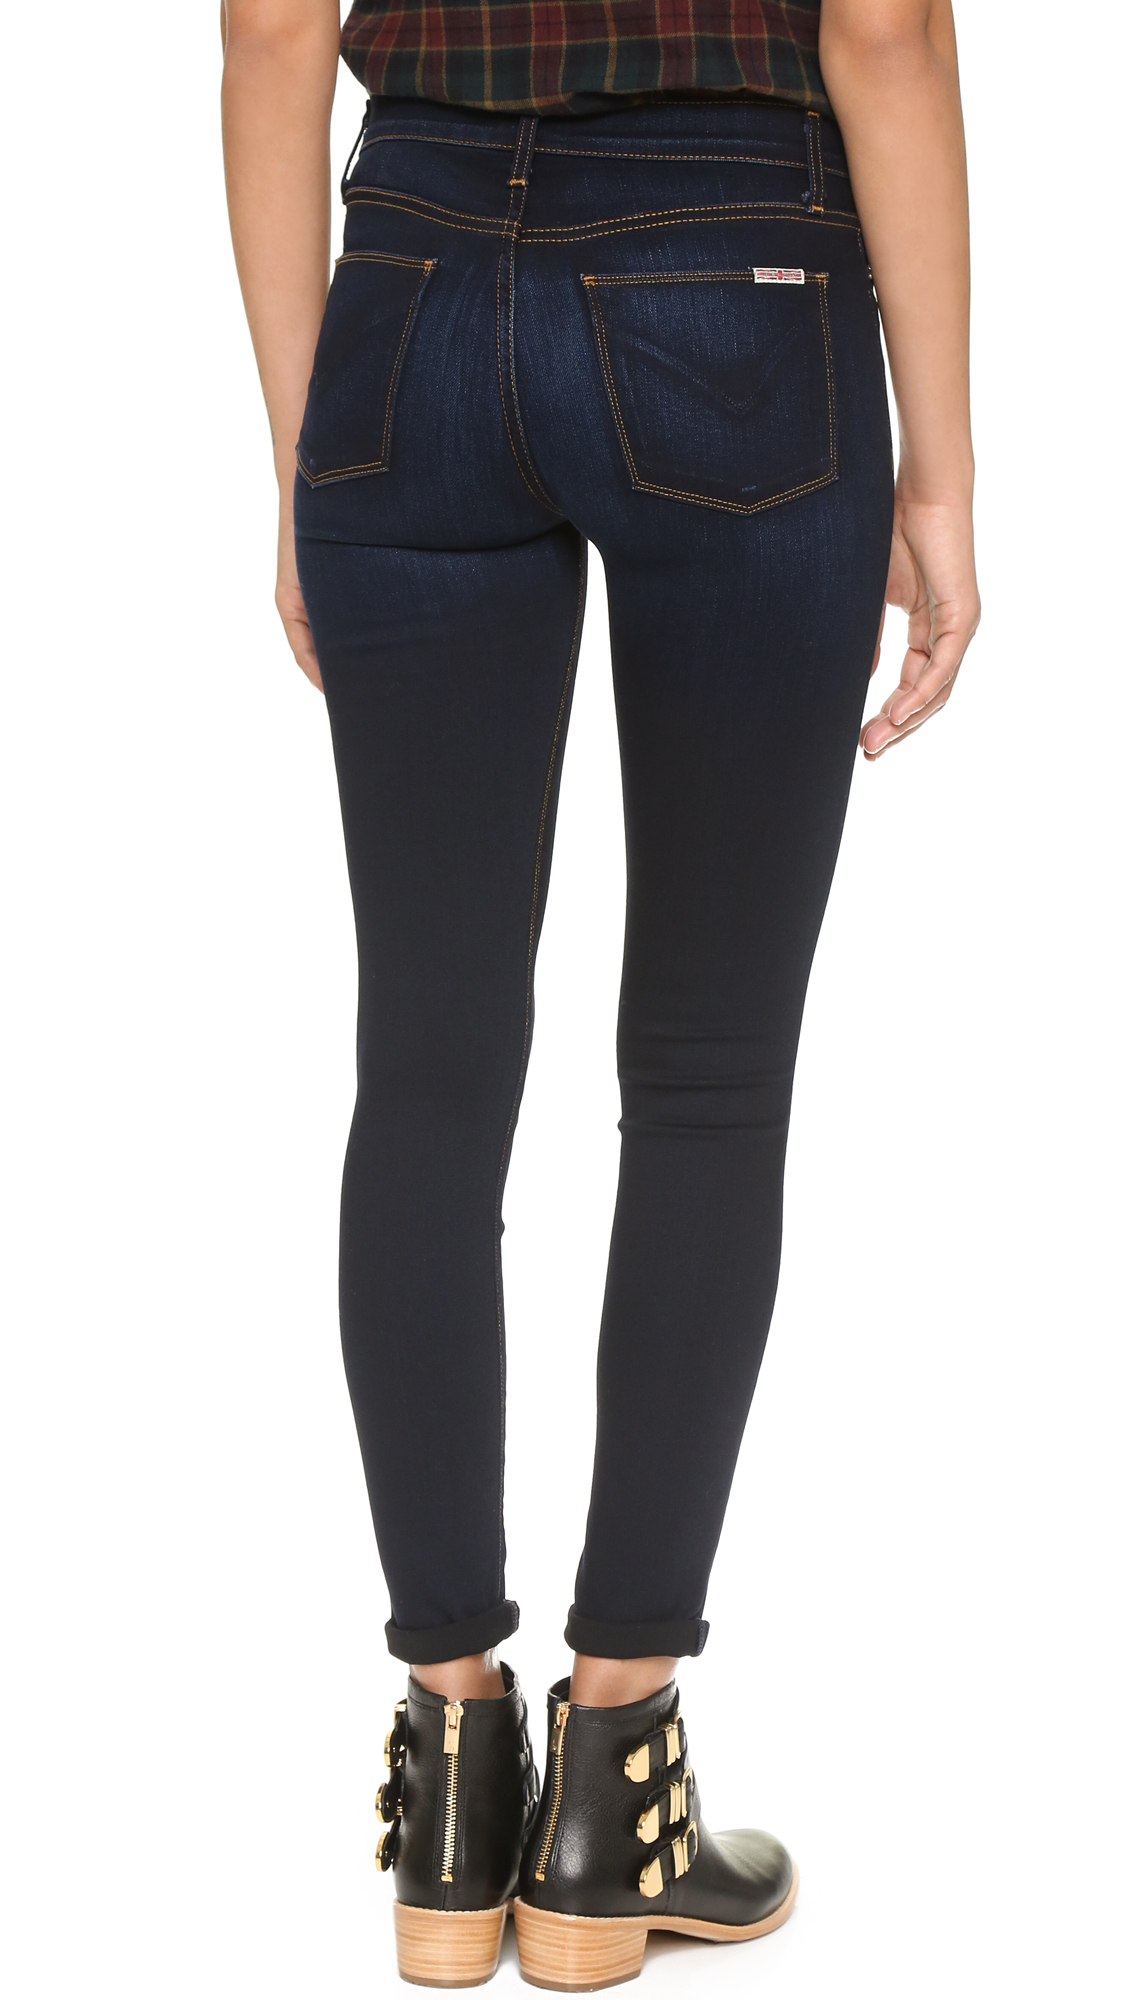 Hudson jeans Barbara High Waisted Super Skinny Jeans in Blue | Lyst